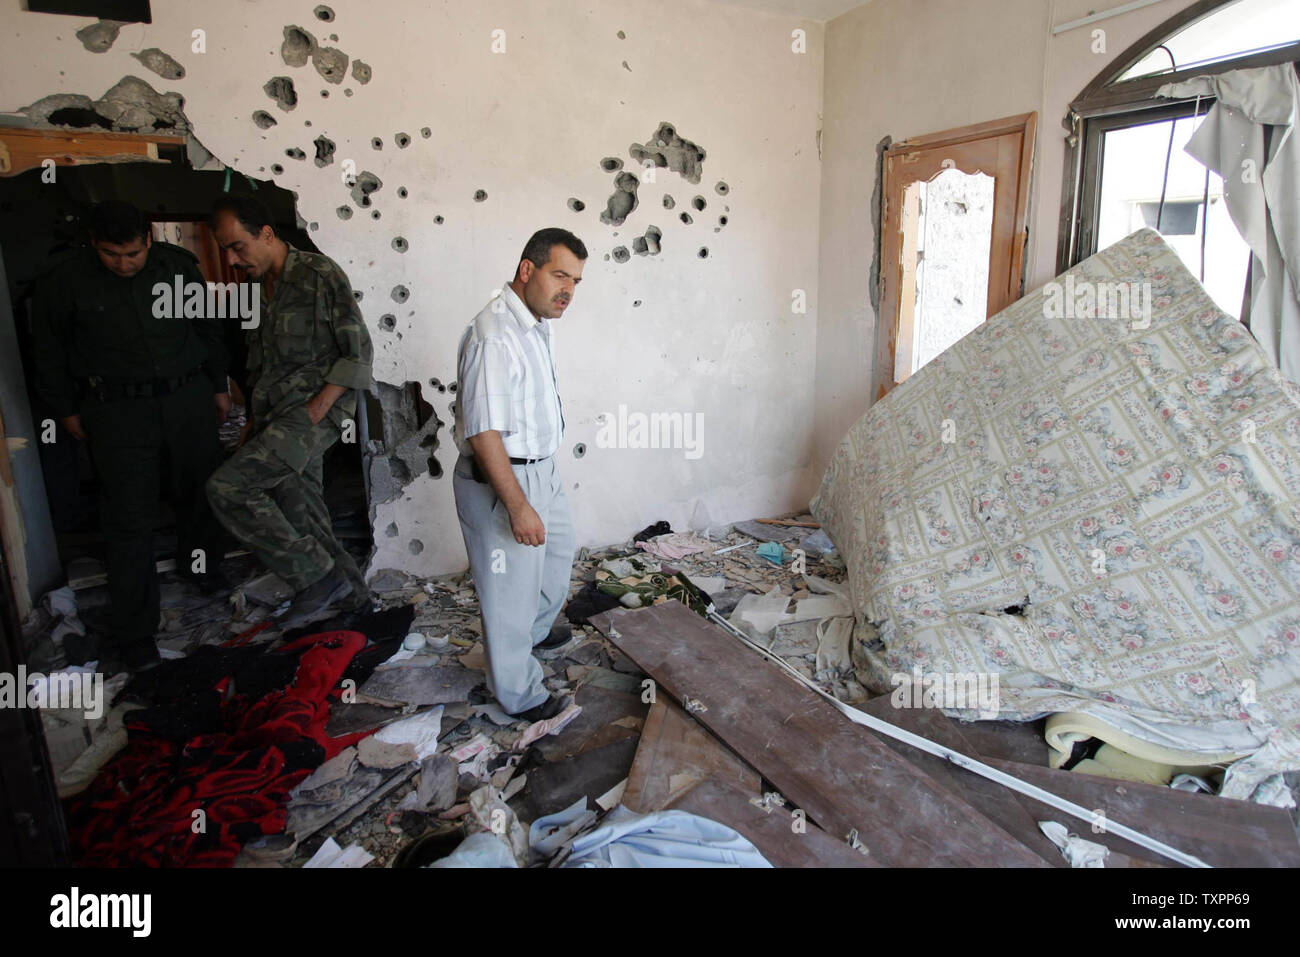 A Palestinian family surveys the damage in a bedroom destroyed by Israeli tanks and bullets in Beit Lahia, northern Gaza, on July 8, 2006. According to sources, Israel has pulled out its forces from the town of Beit Lahia following the death of 35 Palestinians and one Israeli soldier since Israel launched its large scale military operation in Gaza this week aimed at preventing rocket attacks and securing the release of a captured soldier.  (UPI Photo/Ismael Mohamad) - Stock Image